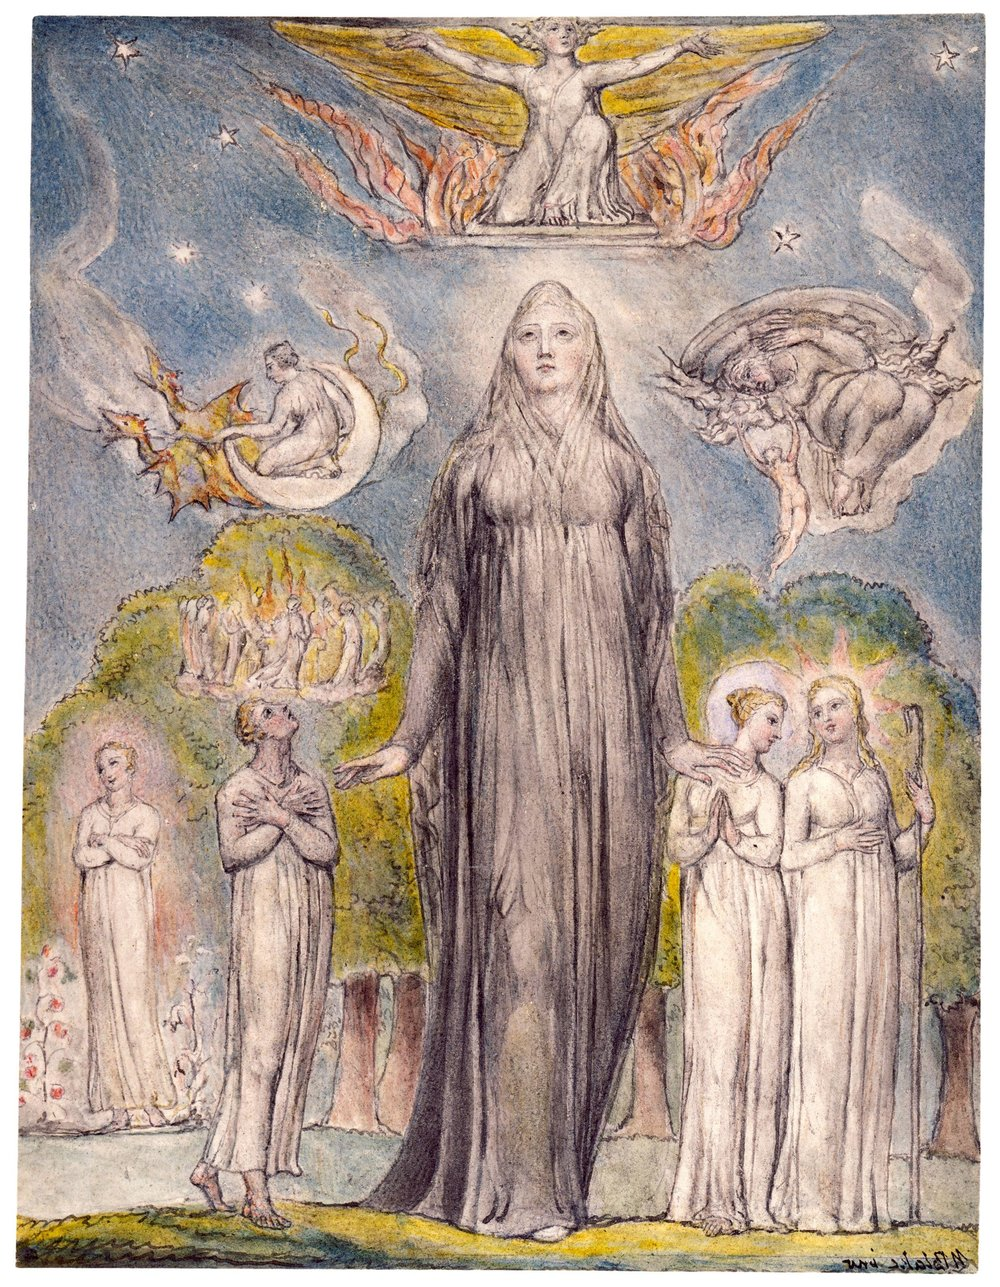 Penseroso_&_L'Allegro_William_Blake7.jpg